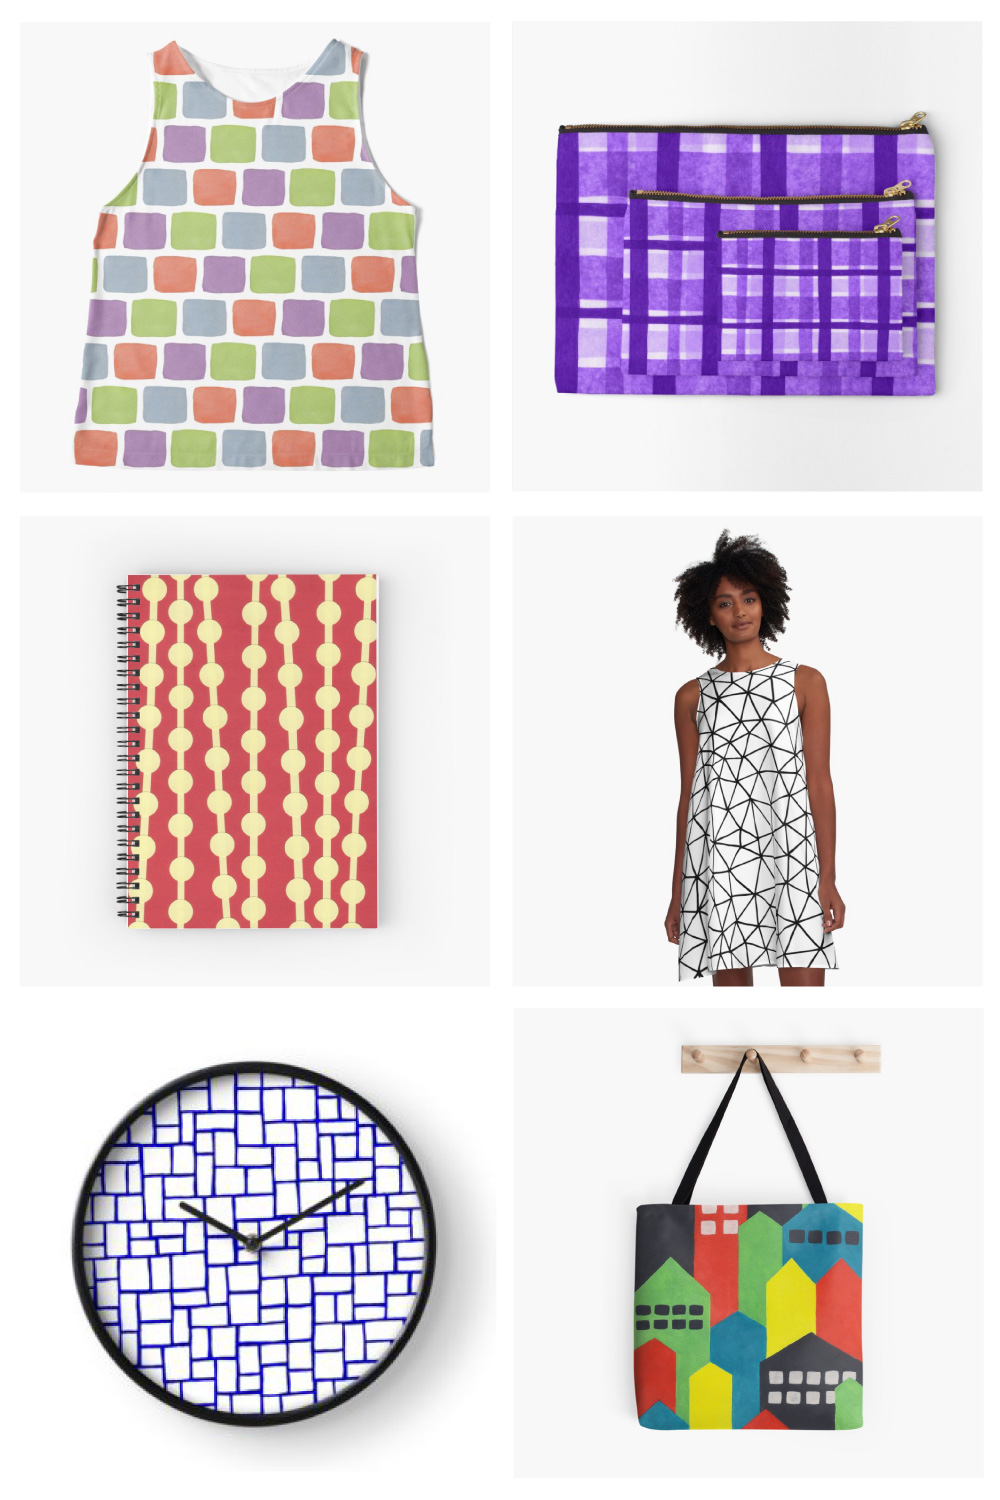 Sally Cummings Designs - Redbubble store preview, December 2018